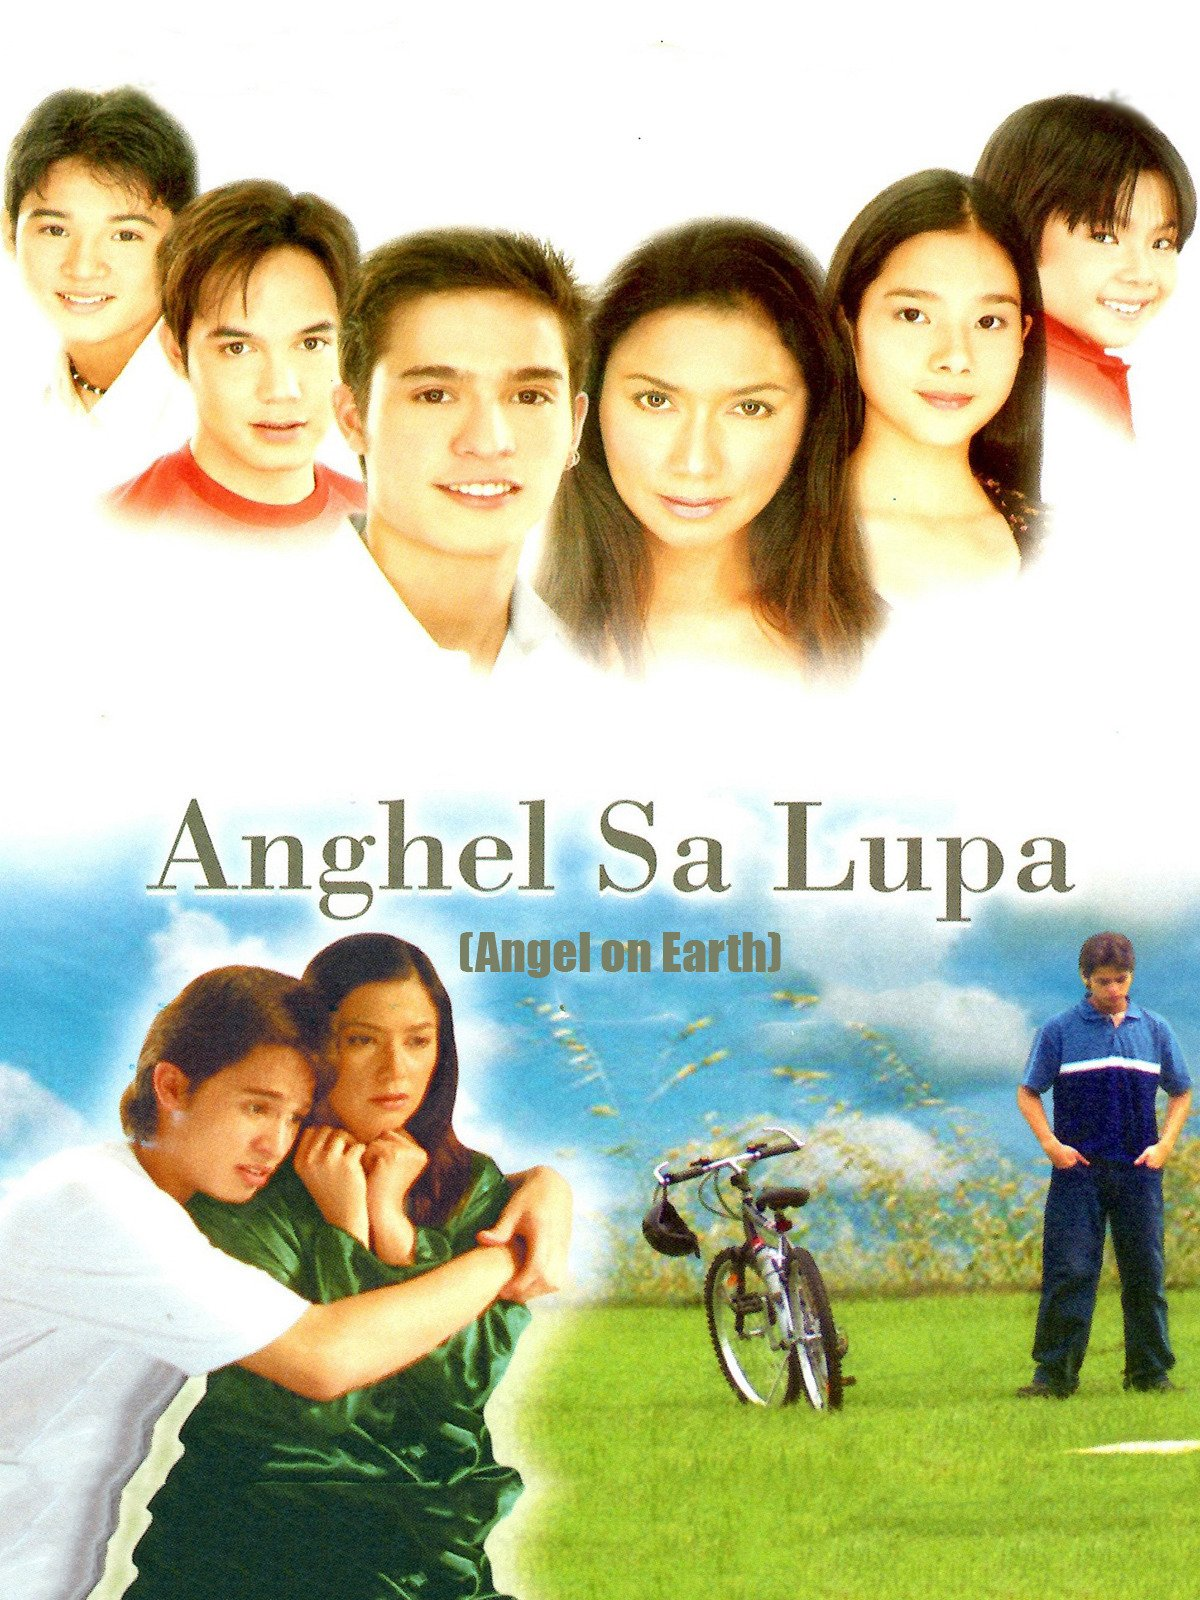 Anghel Sa Lupa (Angel on Earth)